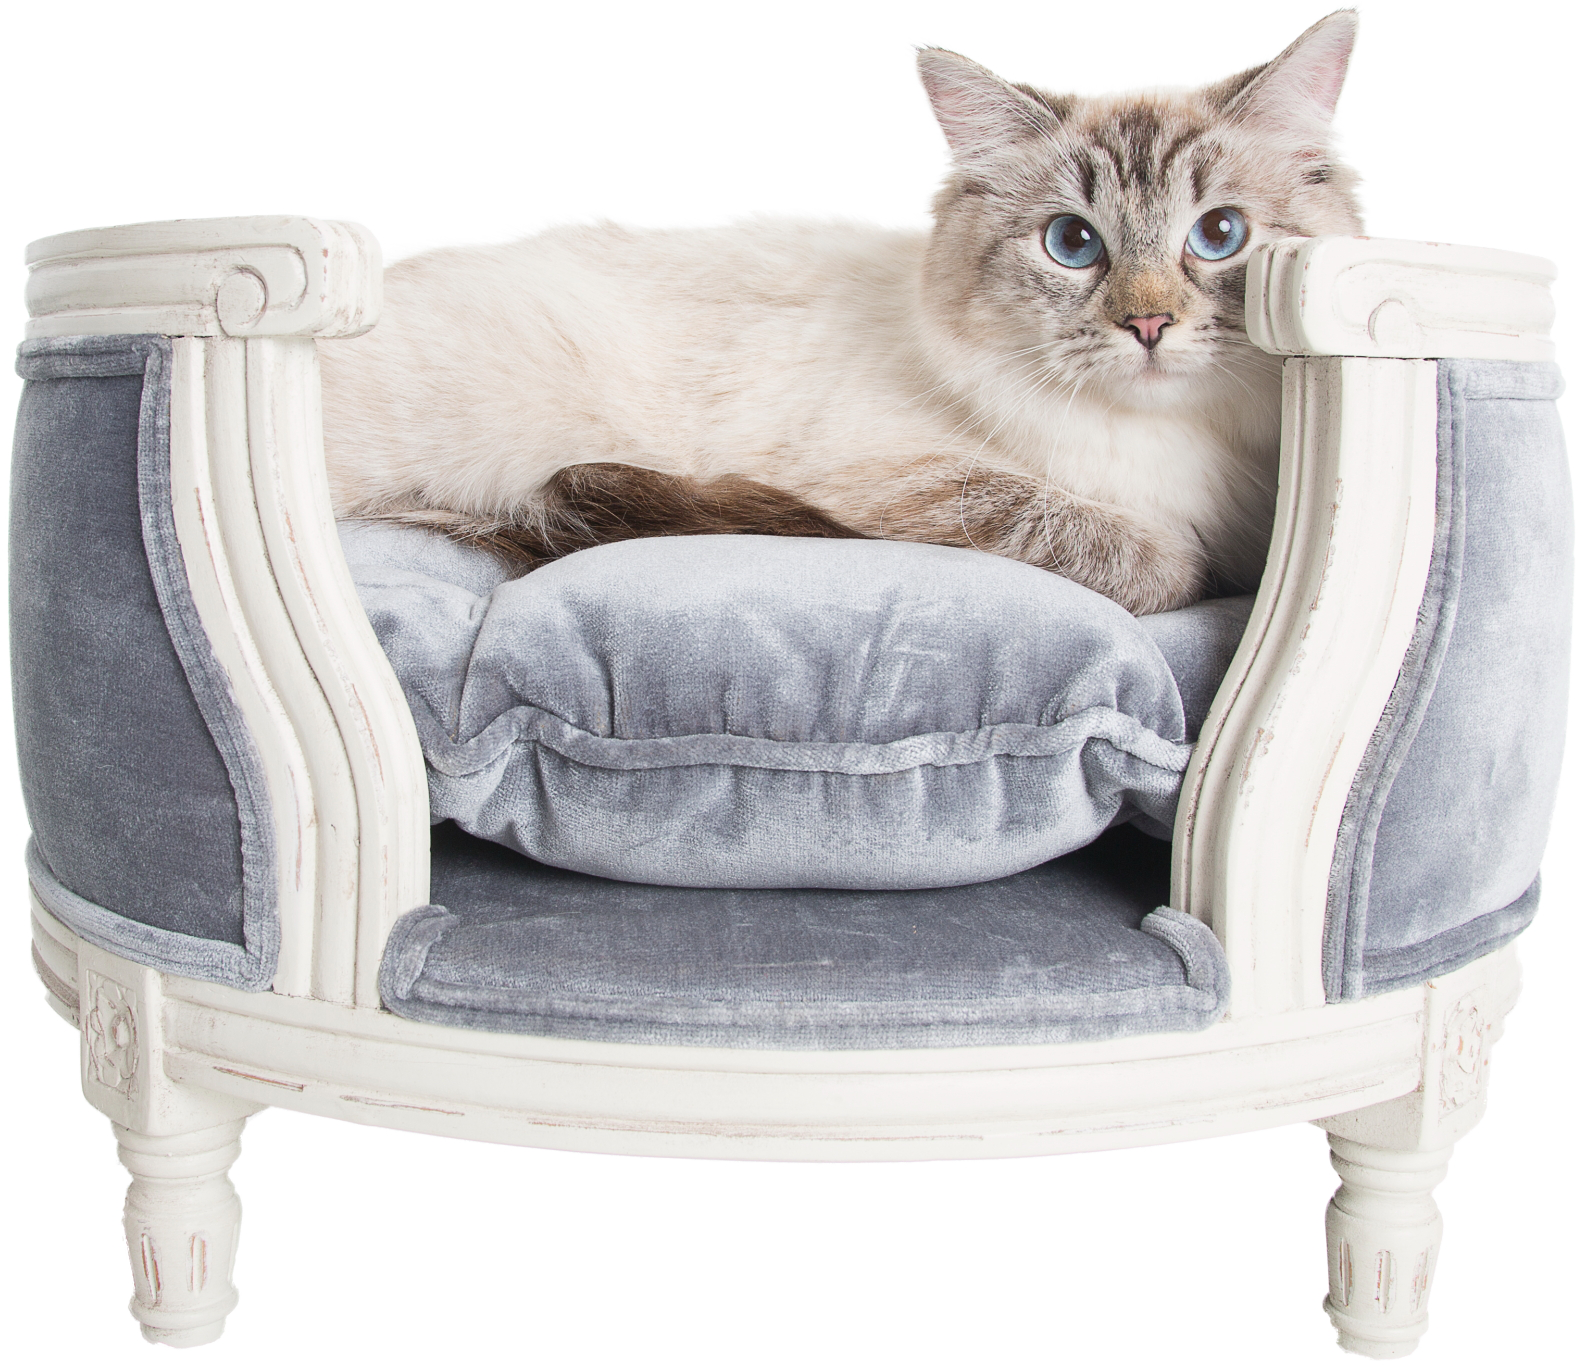 Cat Beds And Furniture Lord Lou Luxury Cat Sofa George Pile Grey Travels